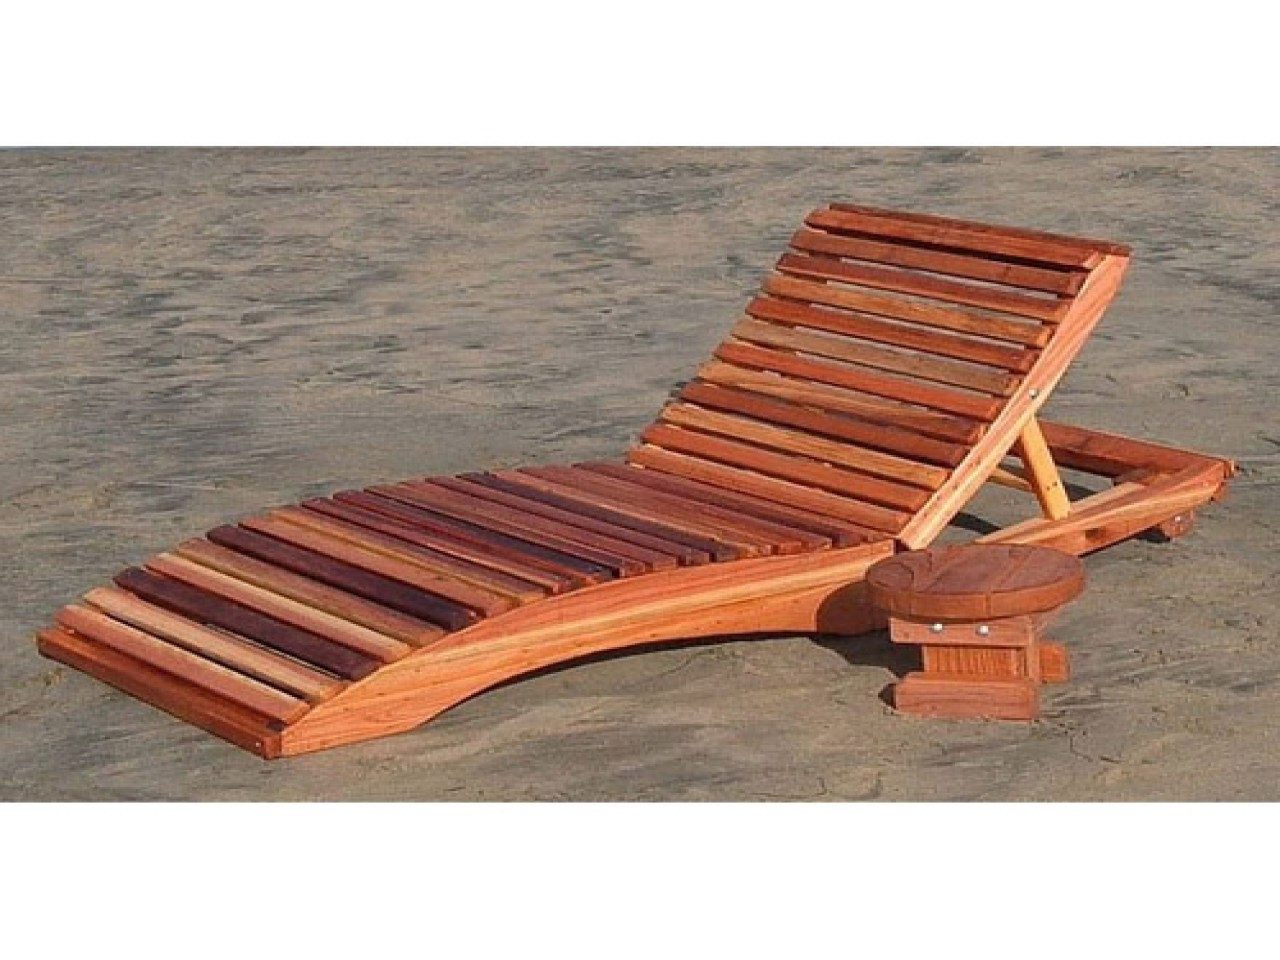 Popular Teak Deck Chair Plans Adirondack Templates With Plan Trends And In Wood  Chaise Lounge Chairs